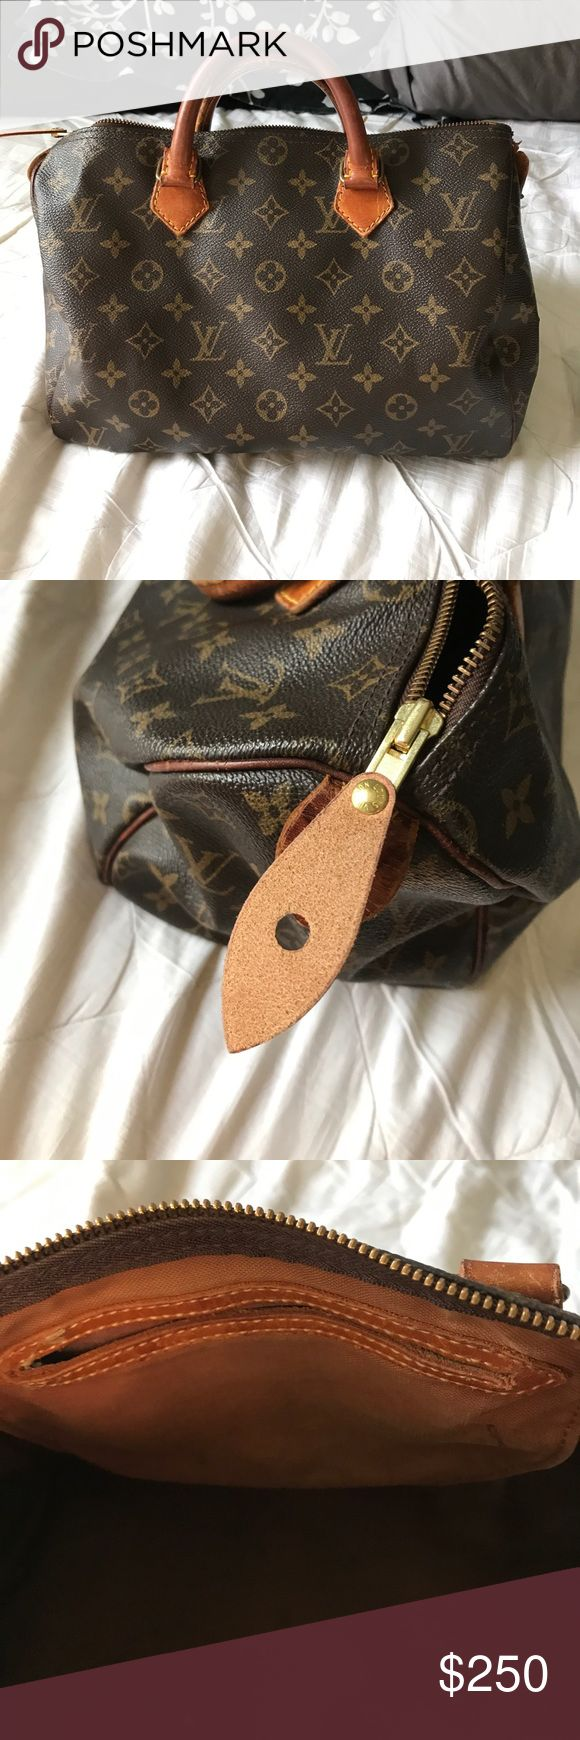 AUTHENTIC Louis Vuitton speedy 30 Great condition. Zipper has been replaced. Authentic Louis Vuitton Bags Hobos